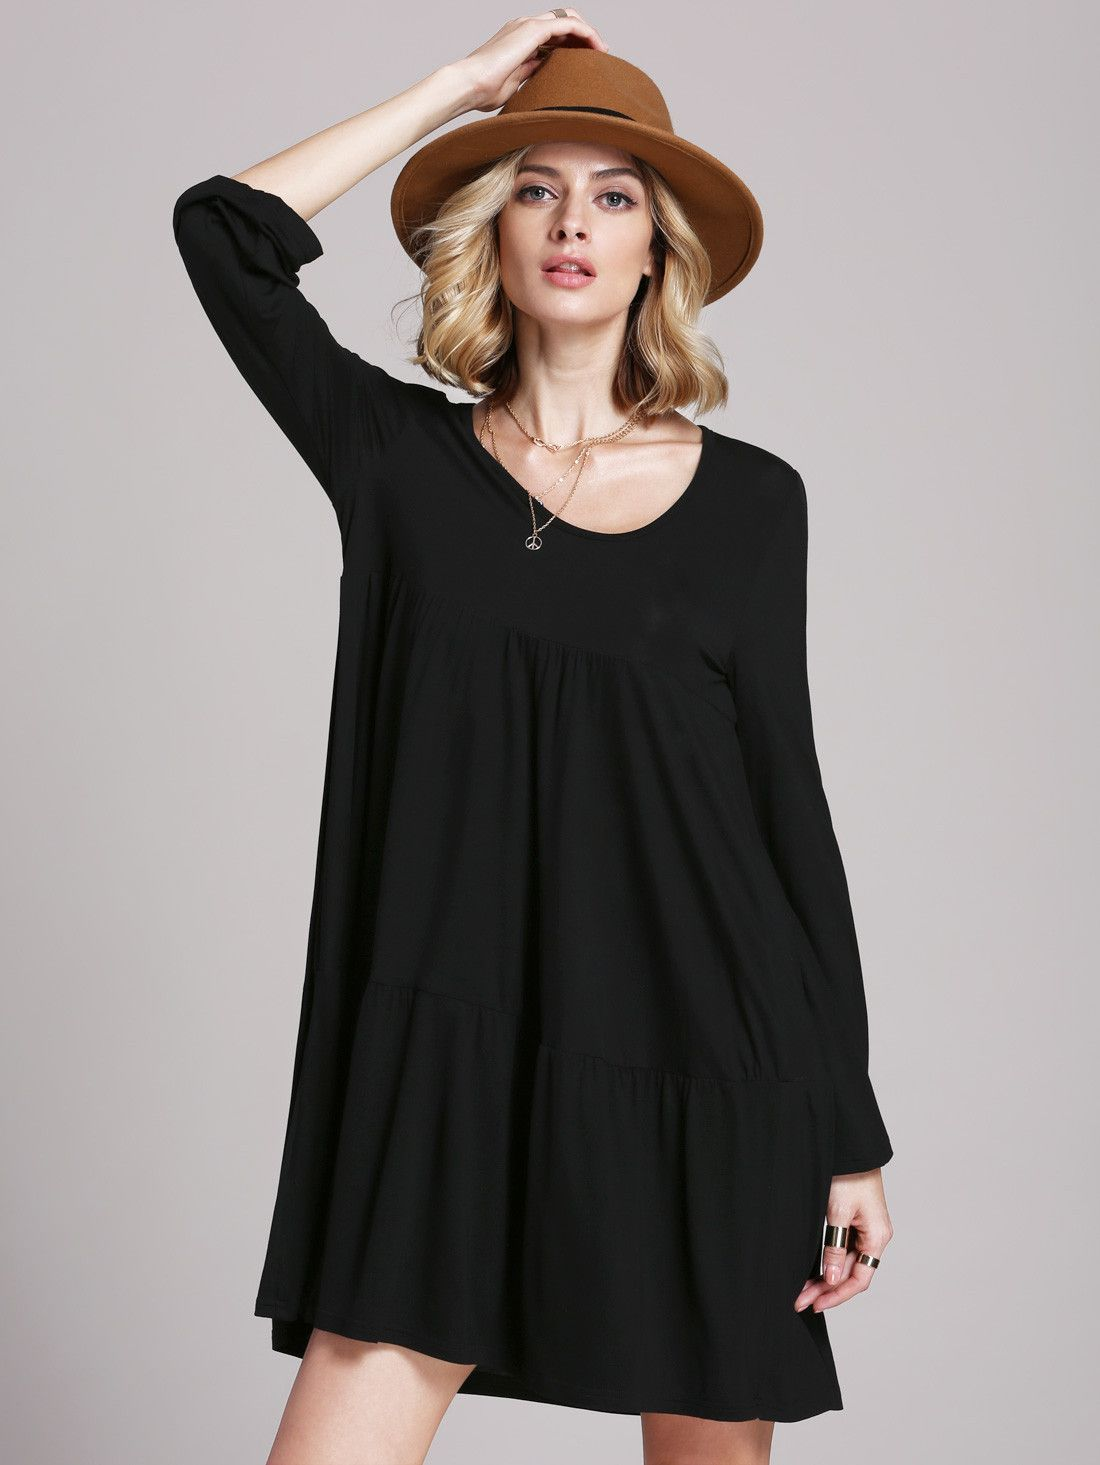 bce4117cd5 Black Lbd Ribbed Baggy Long Sleeve Loose Dress